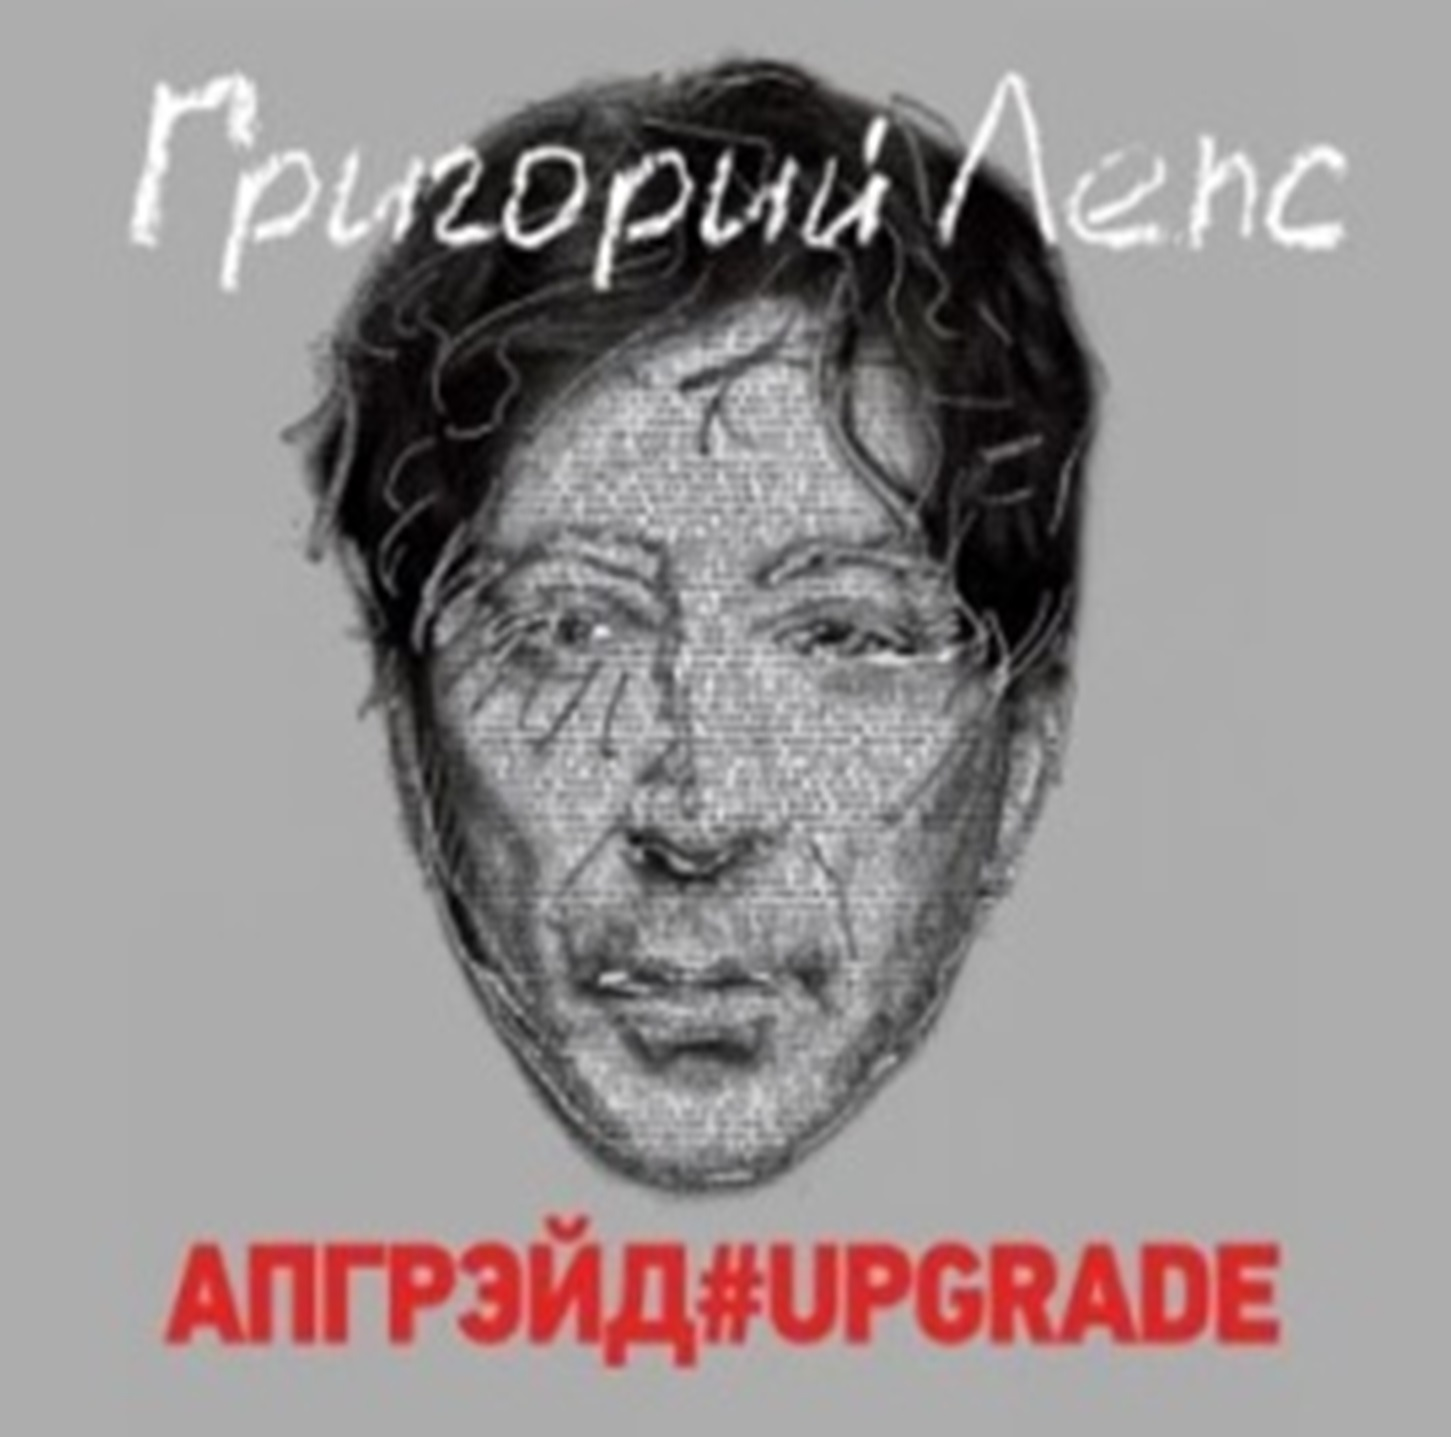 Григорий Лепс – Апгрейд#Upgrade (2 CD)